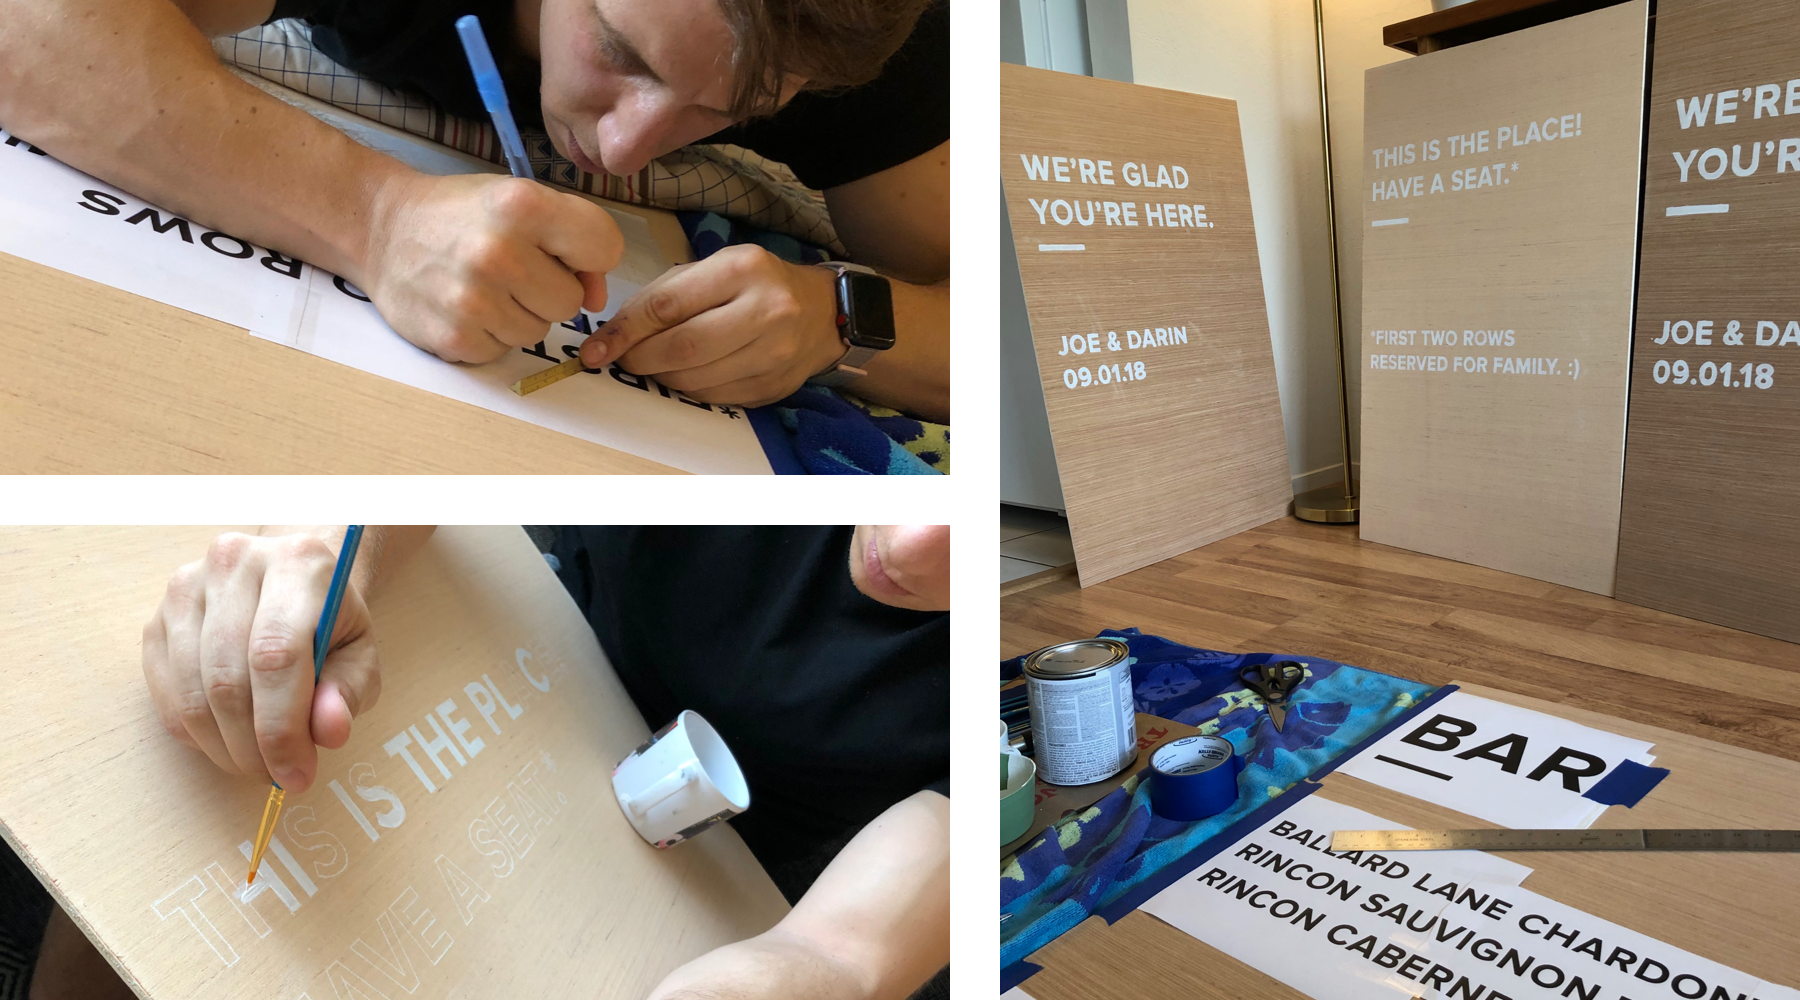 Photos of Darin making wedding signs with white paint on plywood